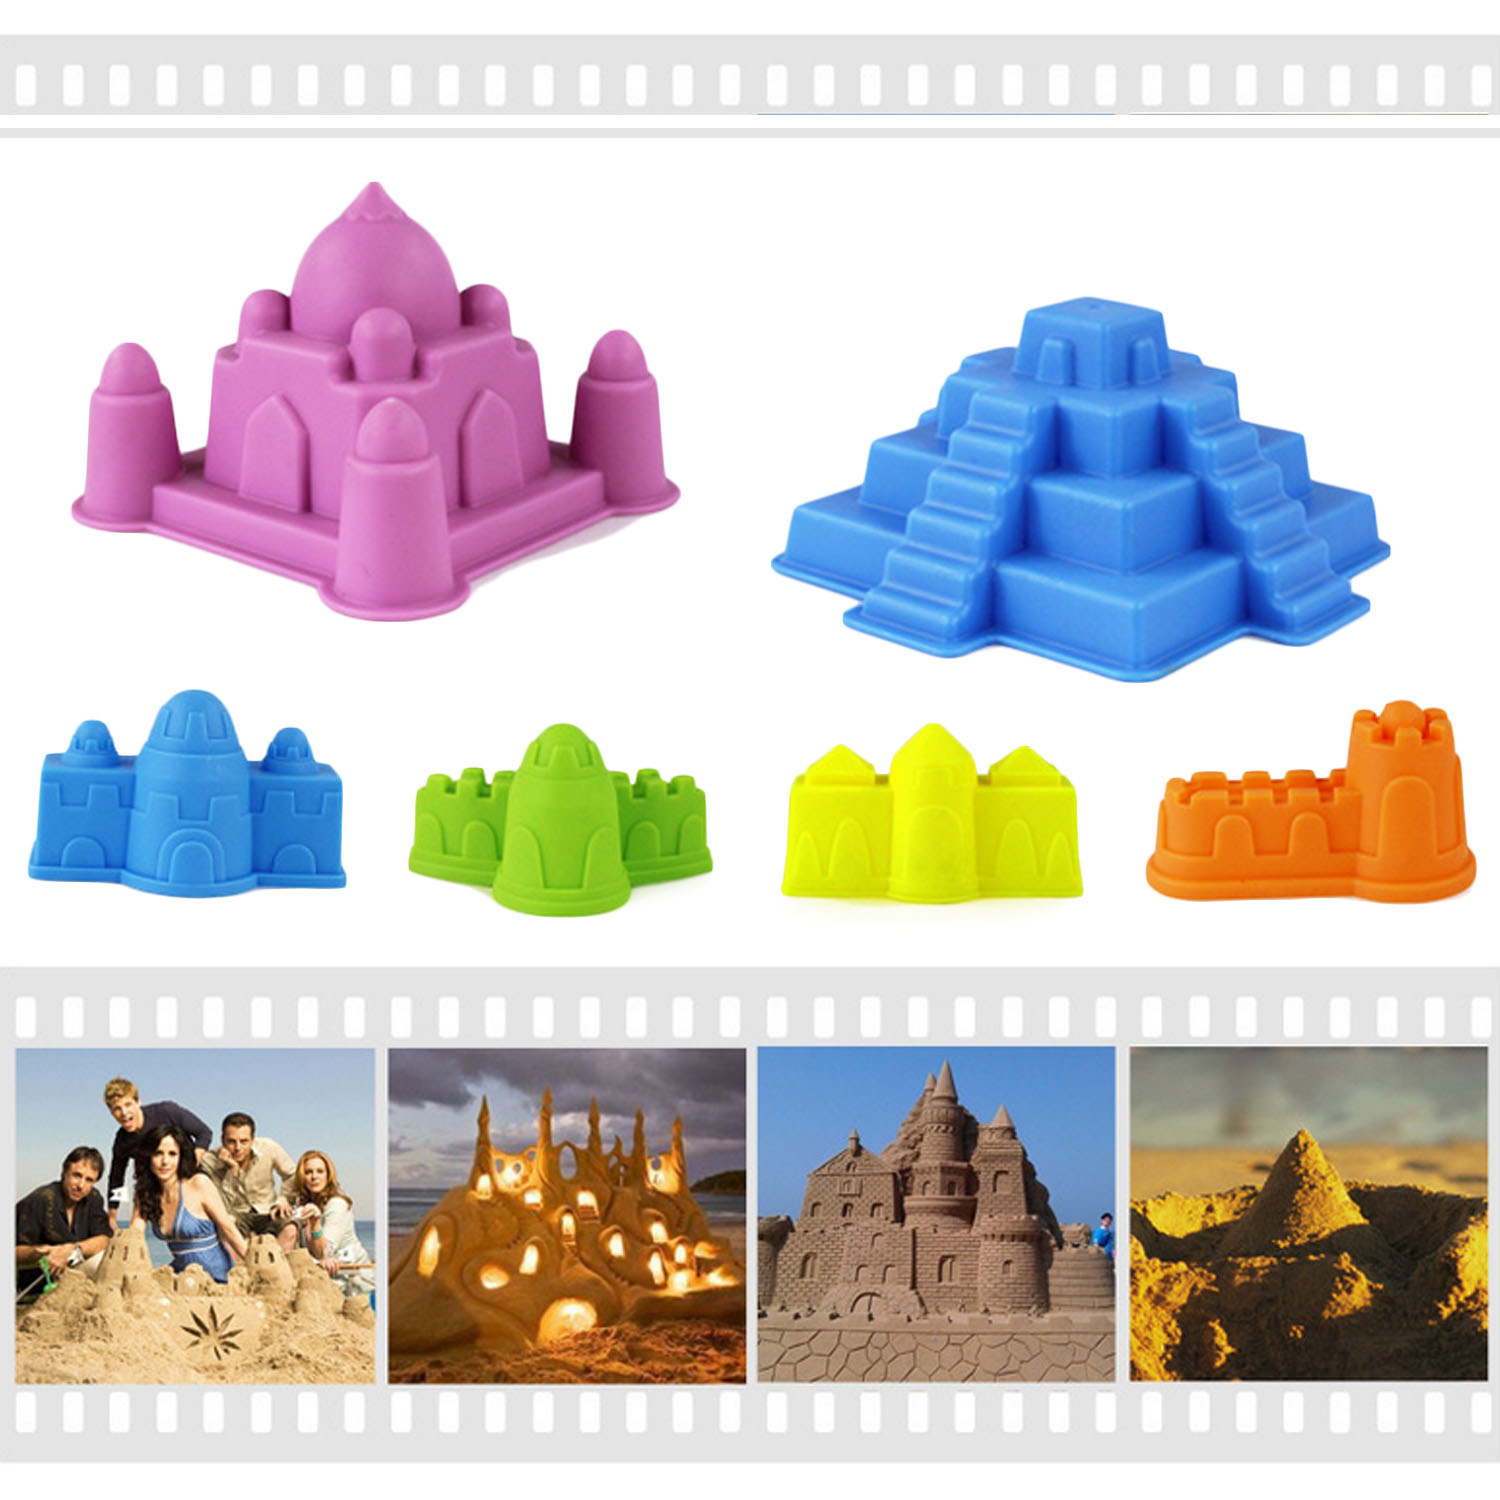 Besegad 6pcs Sand Sandbeach Castle Model Molds Water Tools Toys For Kids Children Outdoor Beach Game Plaything Supplies